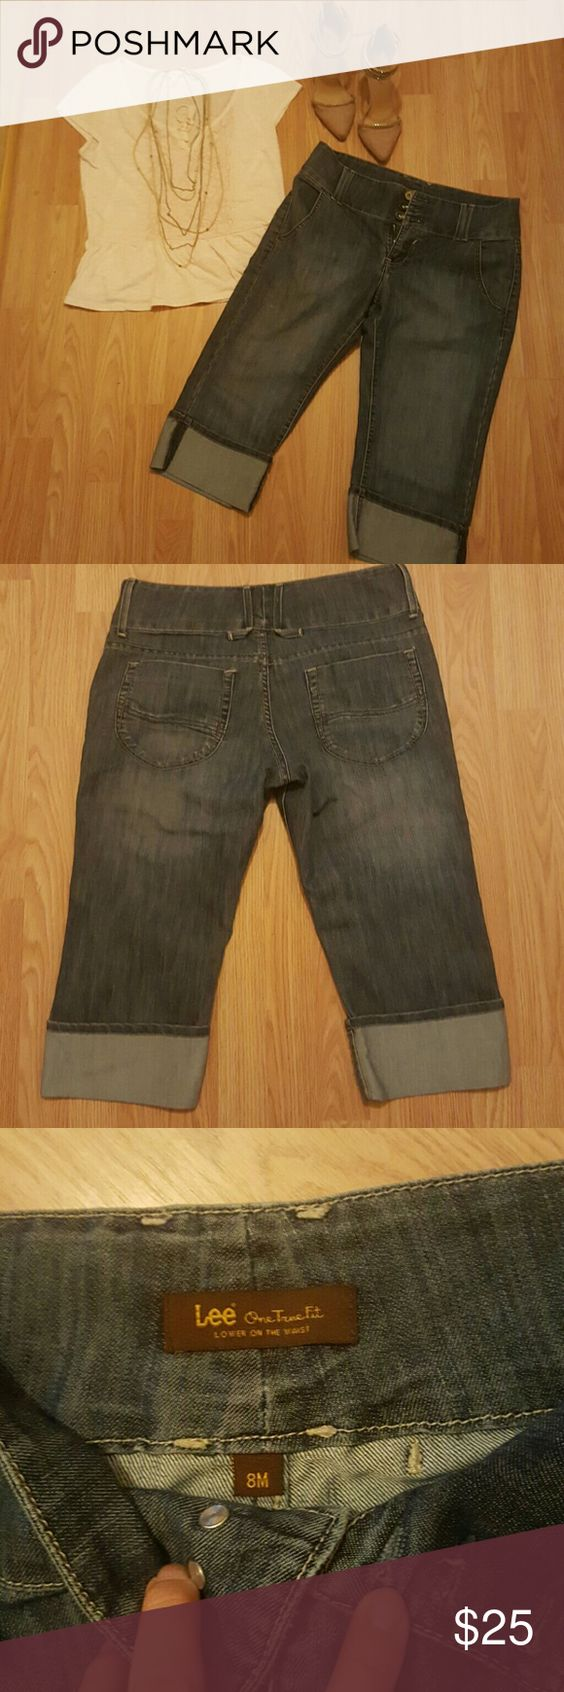 NWOT, LEE Low on the waist, Crop style denim jeans Nwot,  never been worn. Low on the waist,  crop style jeans w/sewed in cuffs on the bottom.. Super cute,  light weight.  Perfect for the summer time! Lee Pants Ankle & Cropped